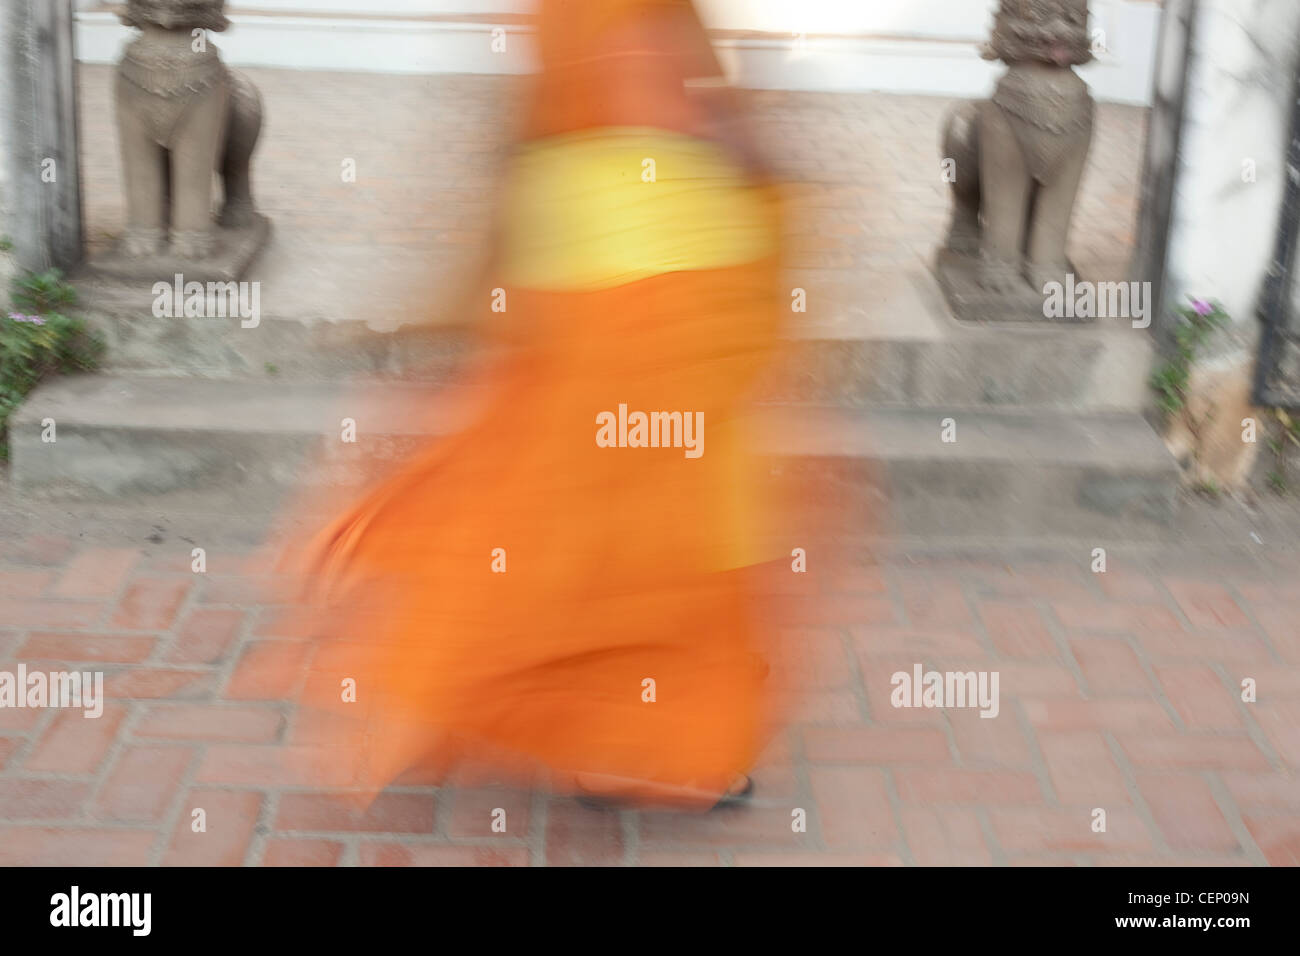 Buddist Monk's robes - Stock Image